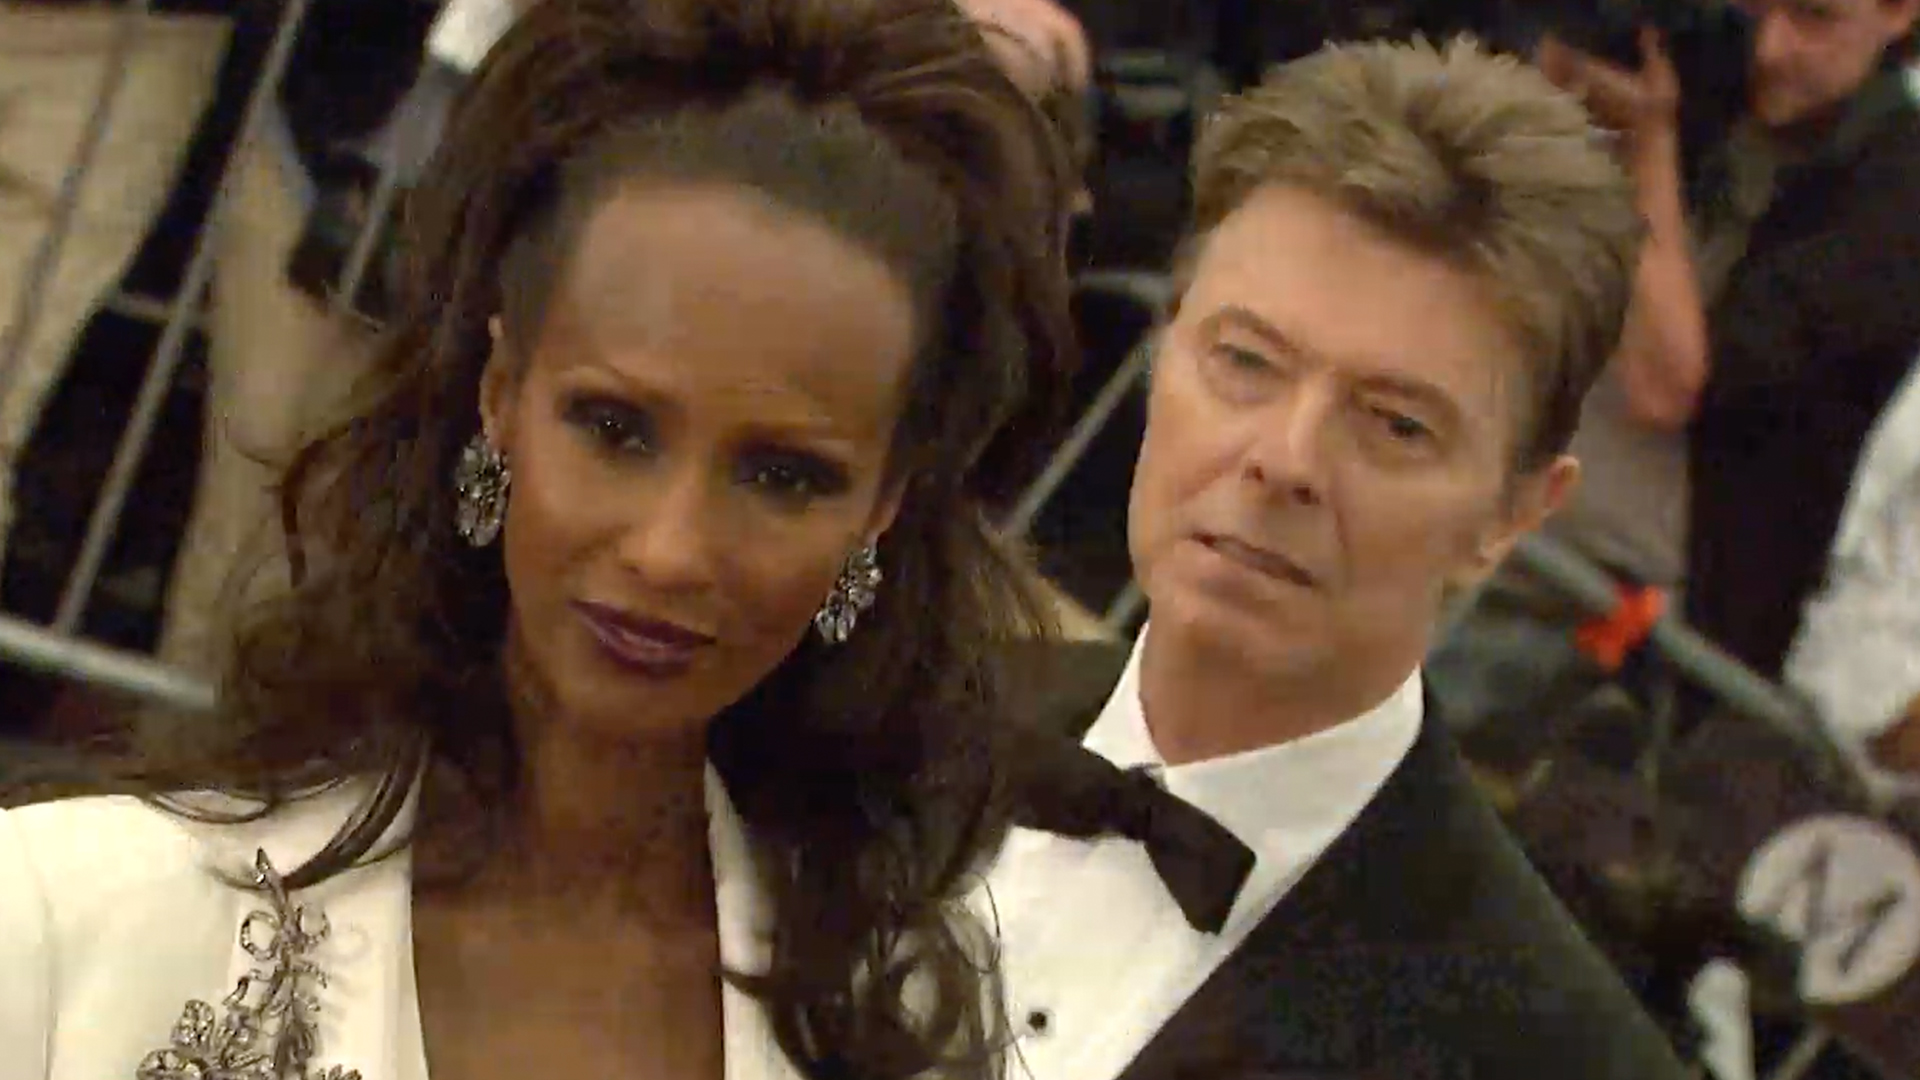 The Love He Left Behind: All About David Bowie and Iman's Unbreakable Bond and How She's 'Holding Up', Says Source